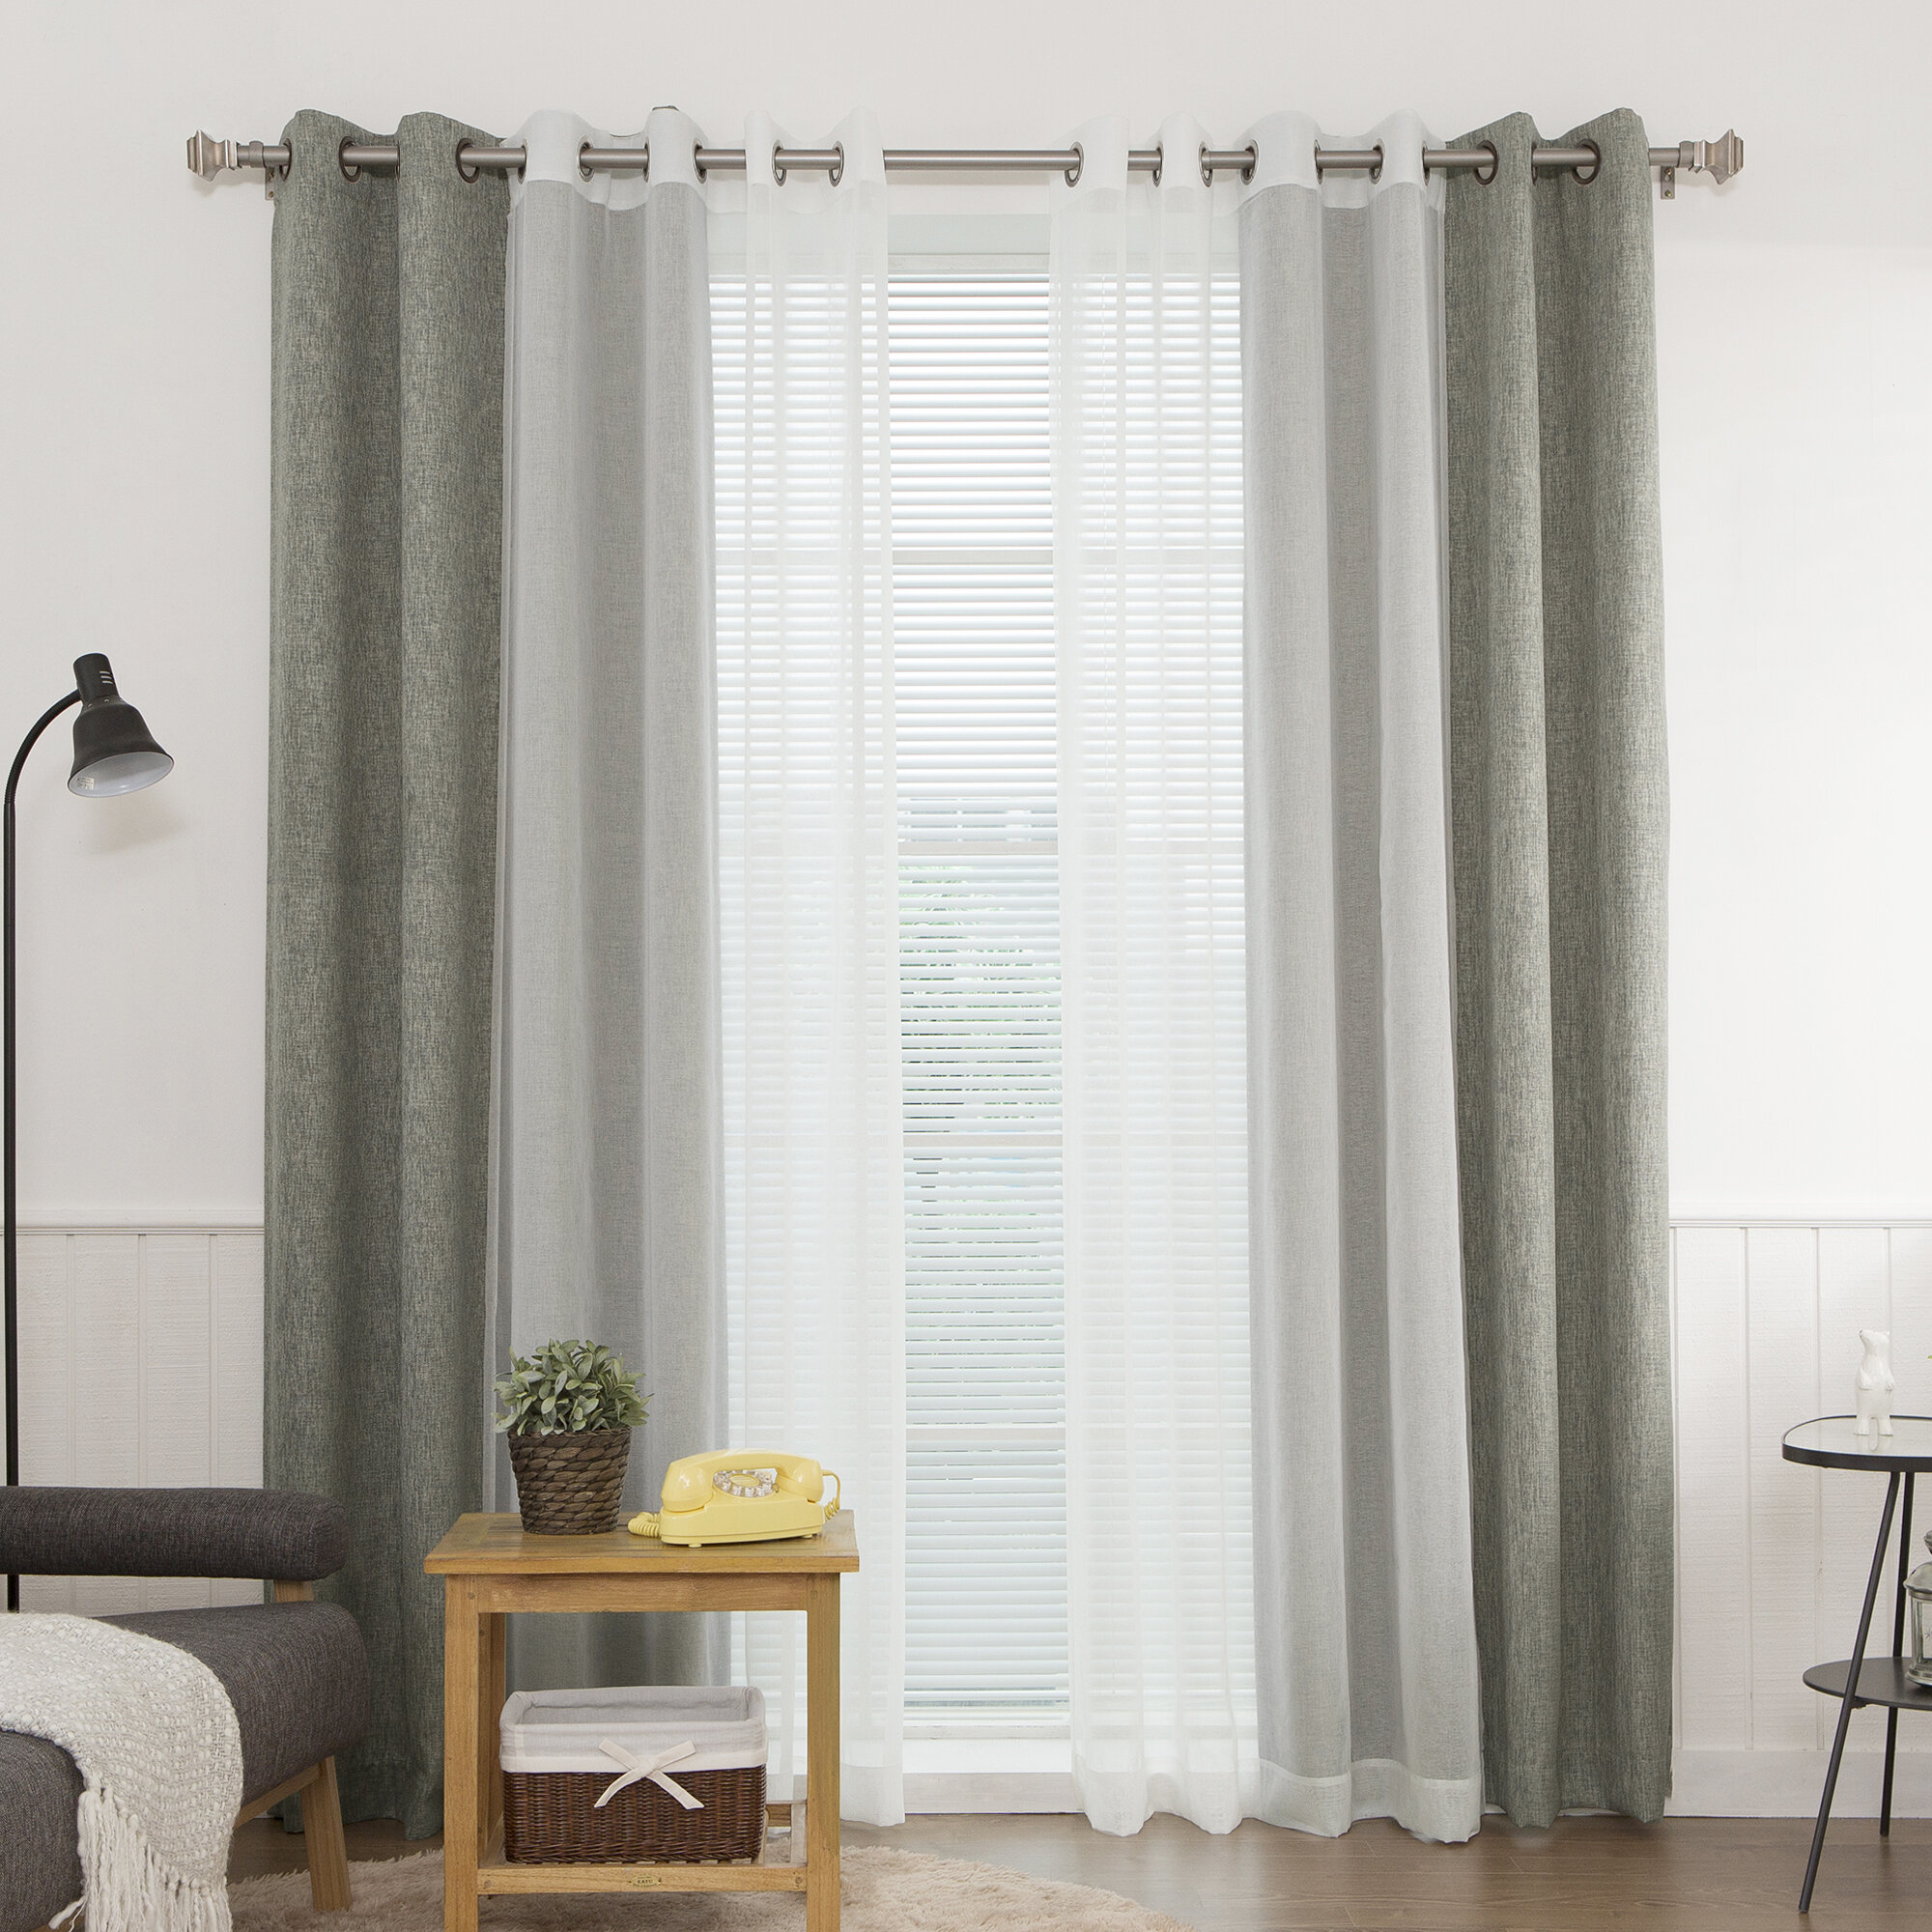 energy ip mainstays helix walmart tone curtain blackout efficient panel grommet curtains com